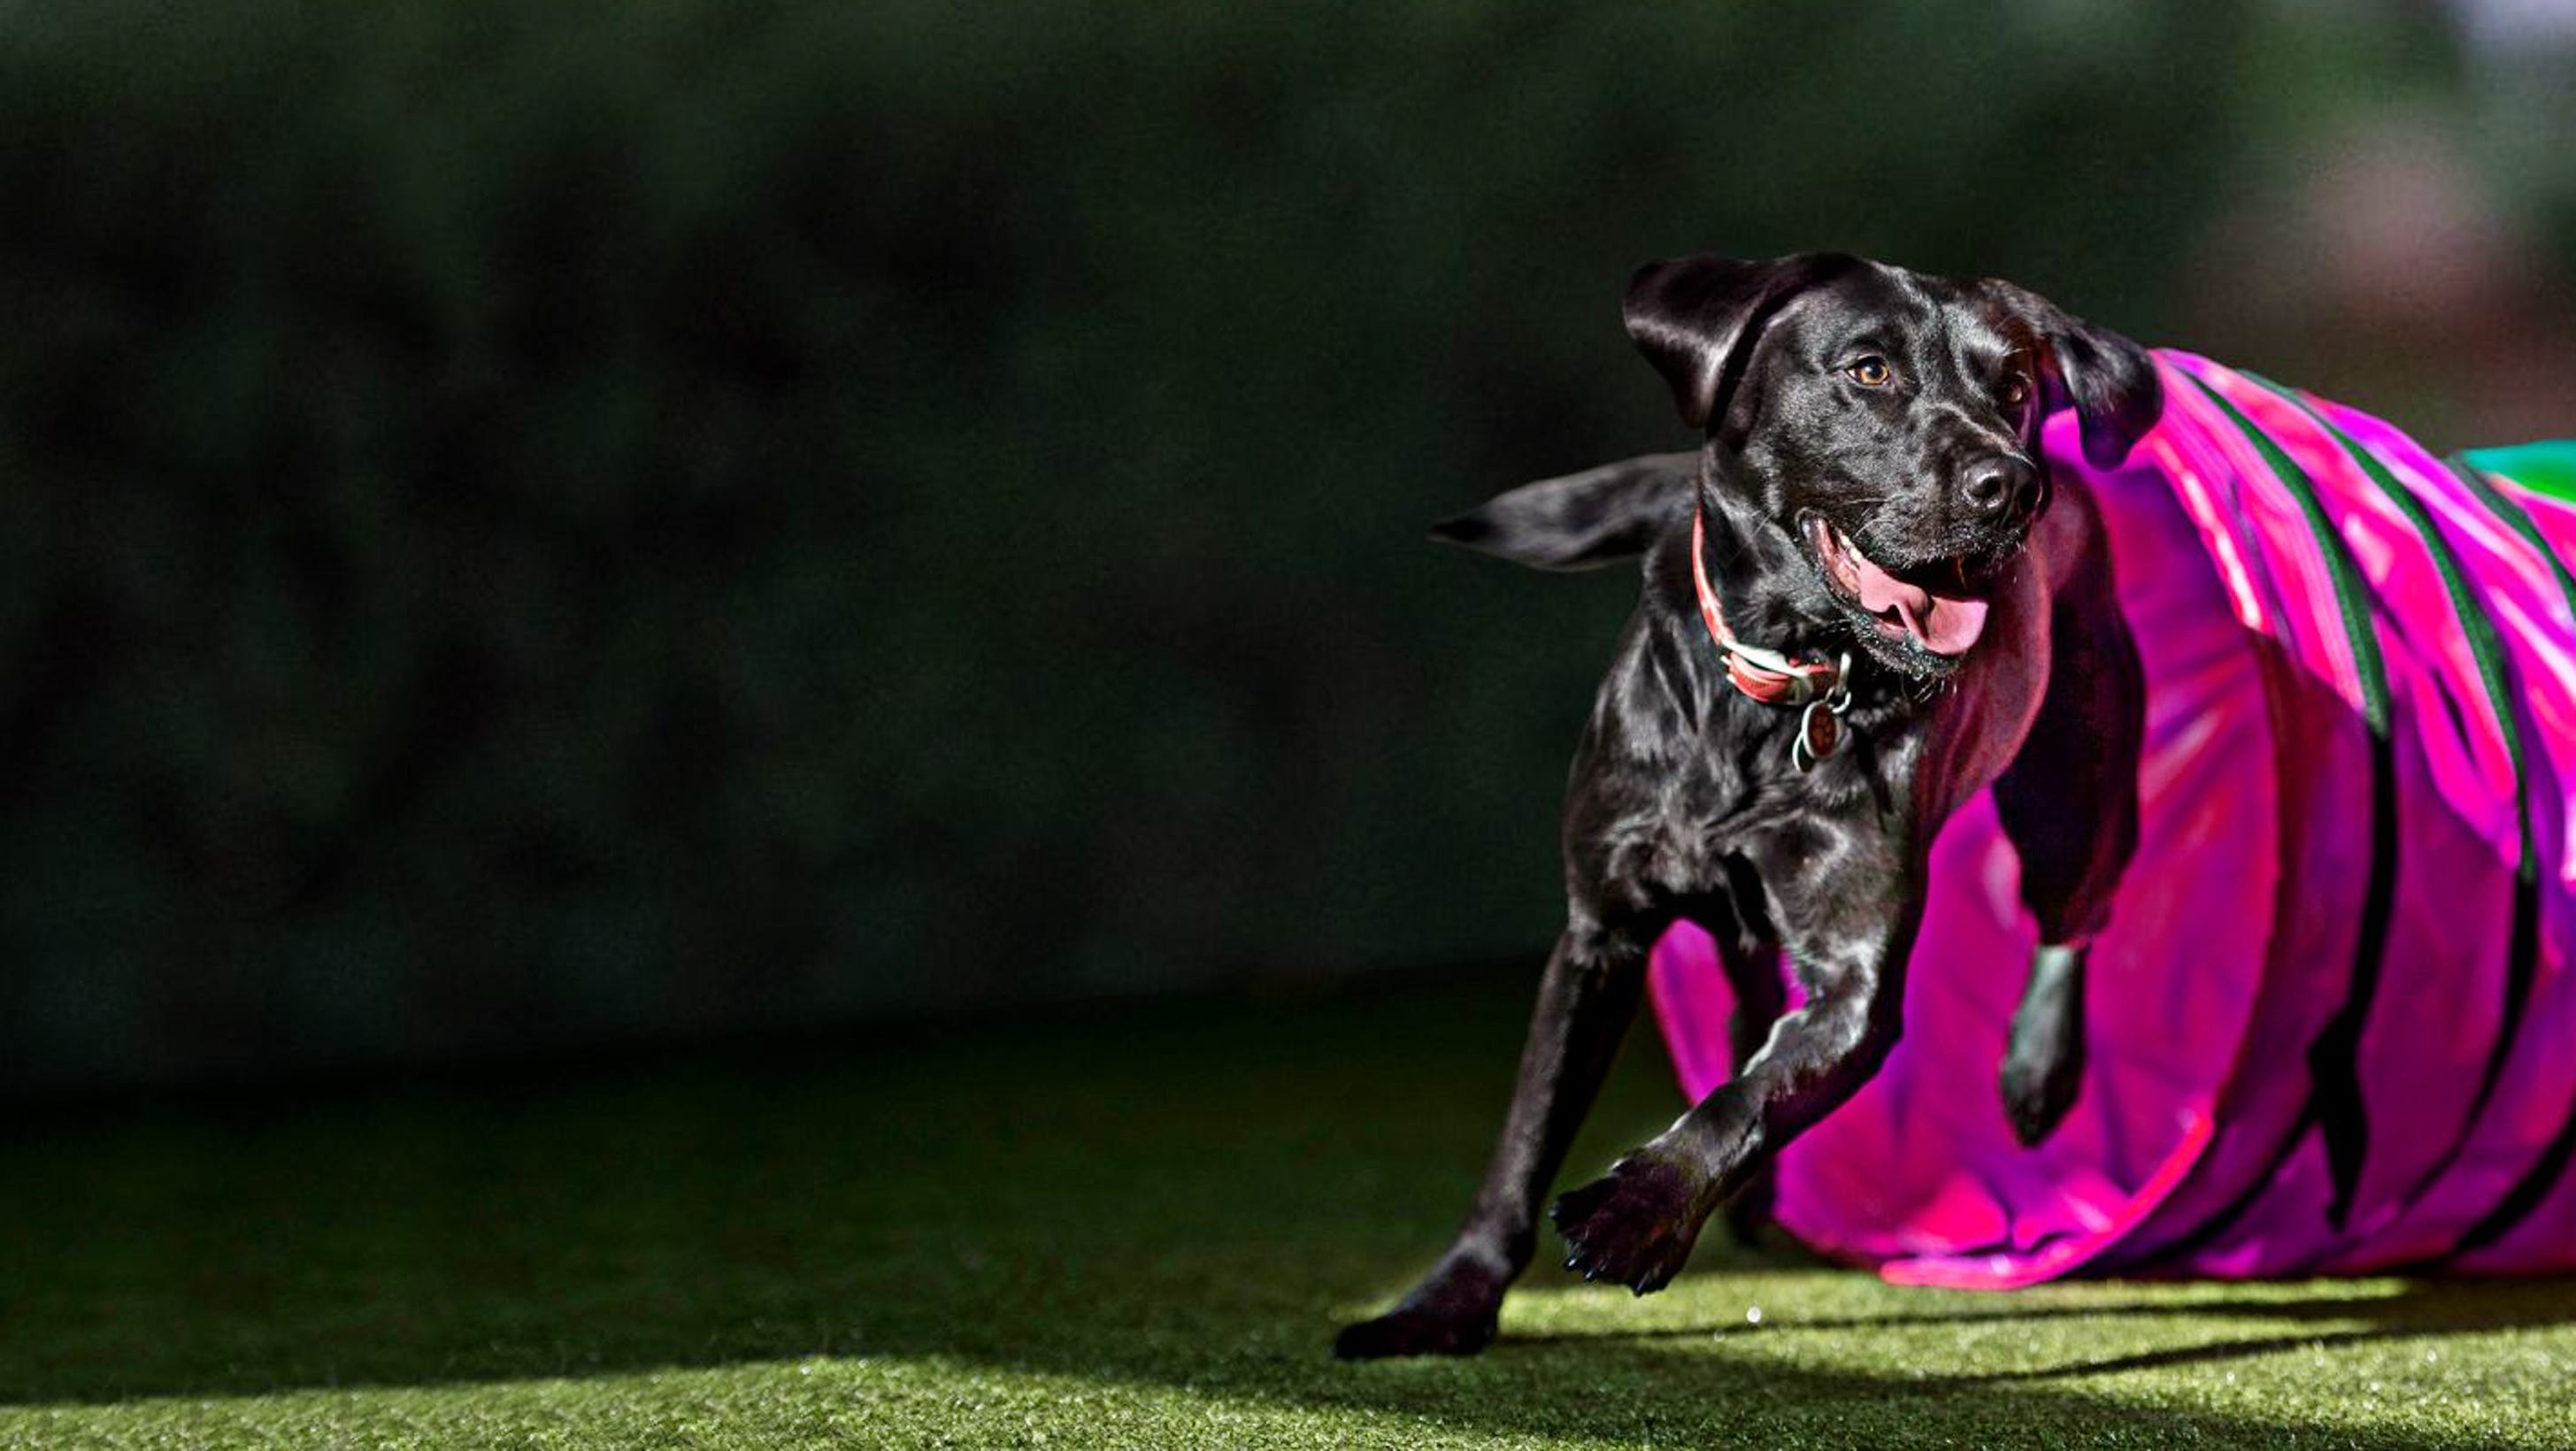 Black Labrador going out of a pink agility tunnel